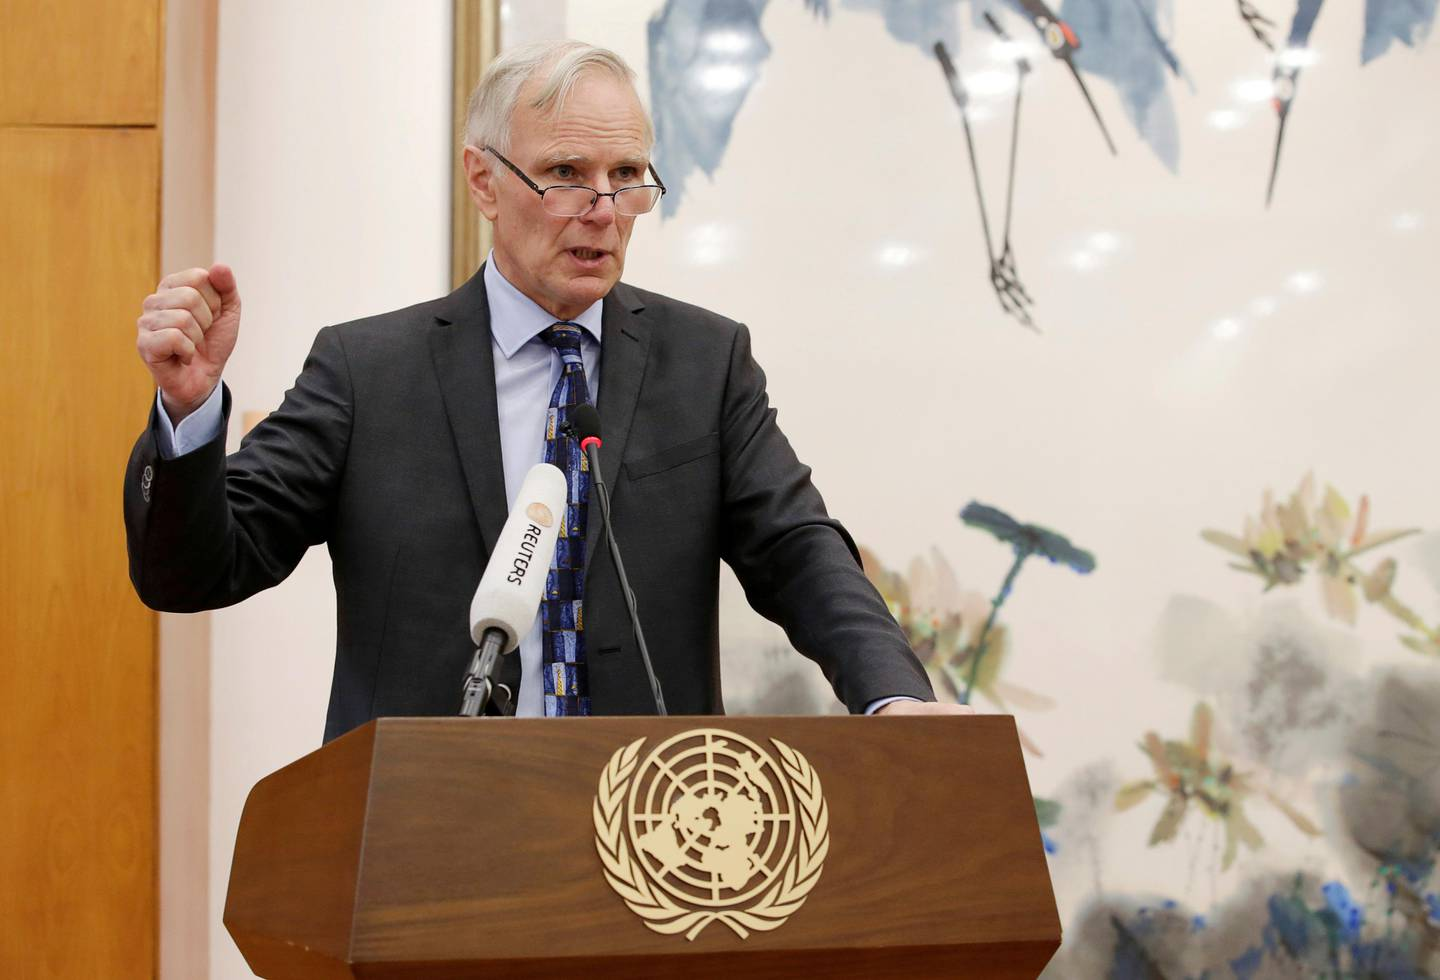 FILE PHOTO: Philip Alston, the U.N.'s special rapporteur on extreme poverty and human rights, attends a news conference in Beijing, China, August 23, 2016. REUTERS/Jason Lee/File Photo